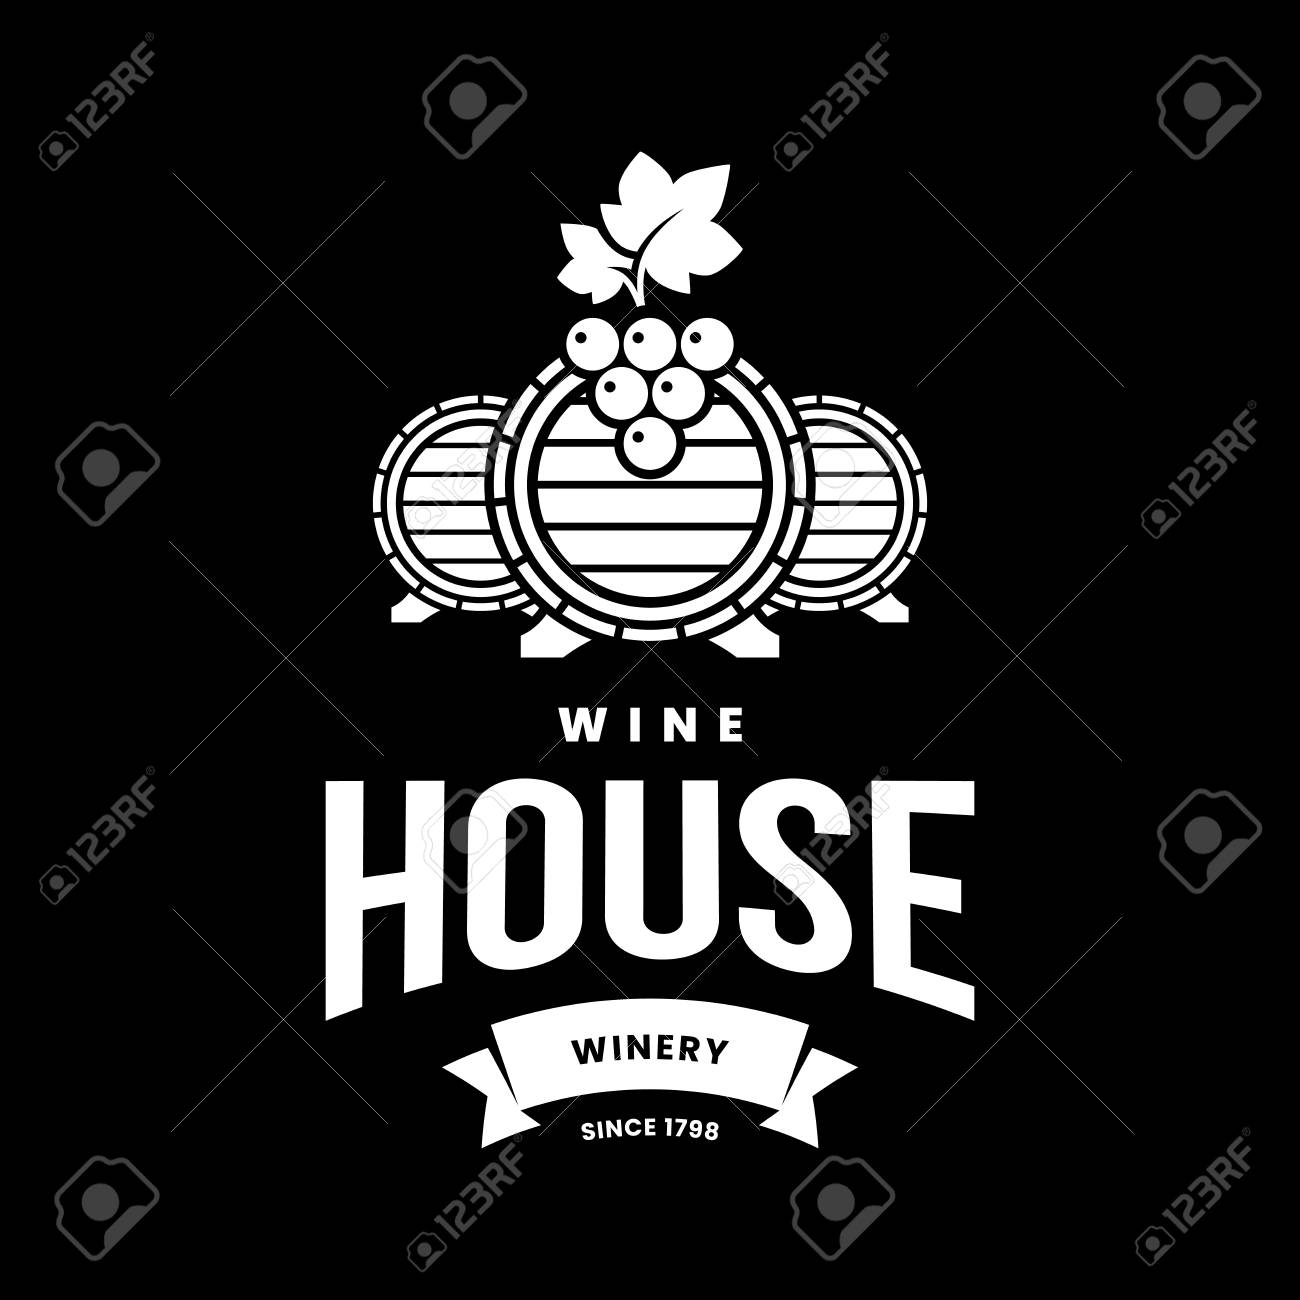 Modern wine vector logo sign for tavern, restaurant, house, shop, store, club and cellar isolated on black background. Premium quality vinery logotype illustration. Fashion brand badge design template. - 126498934